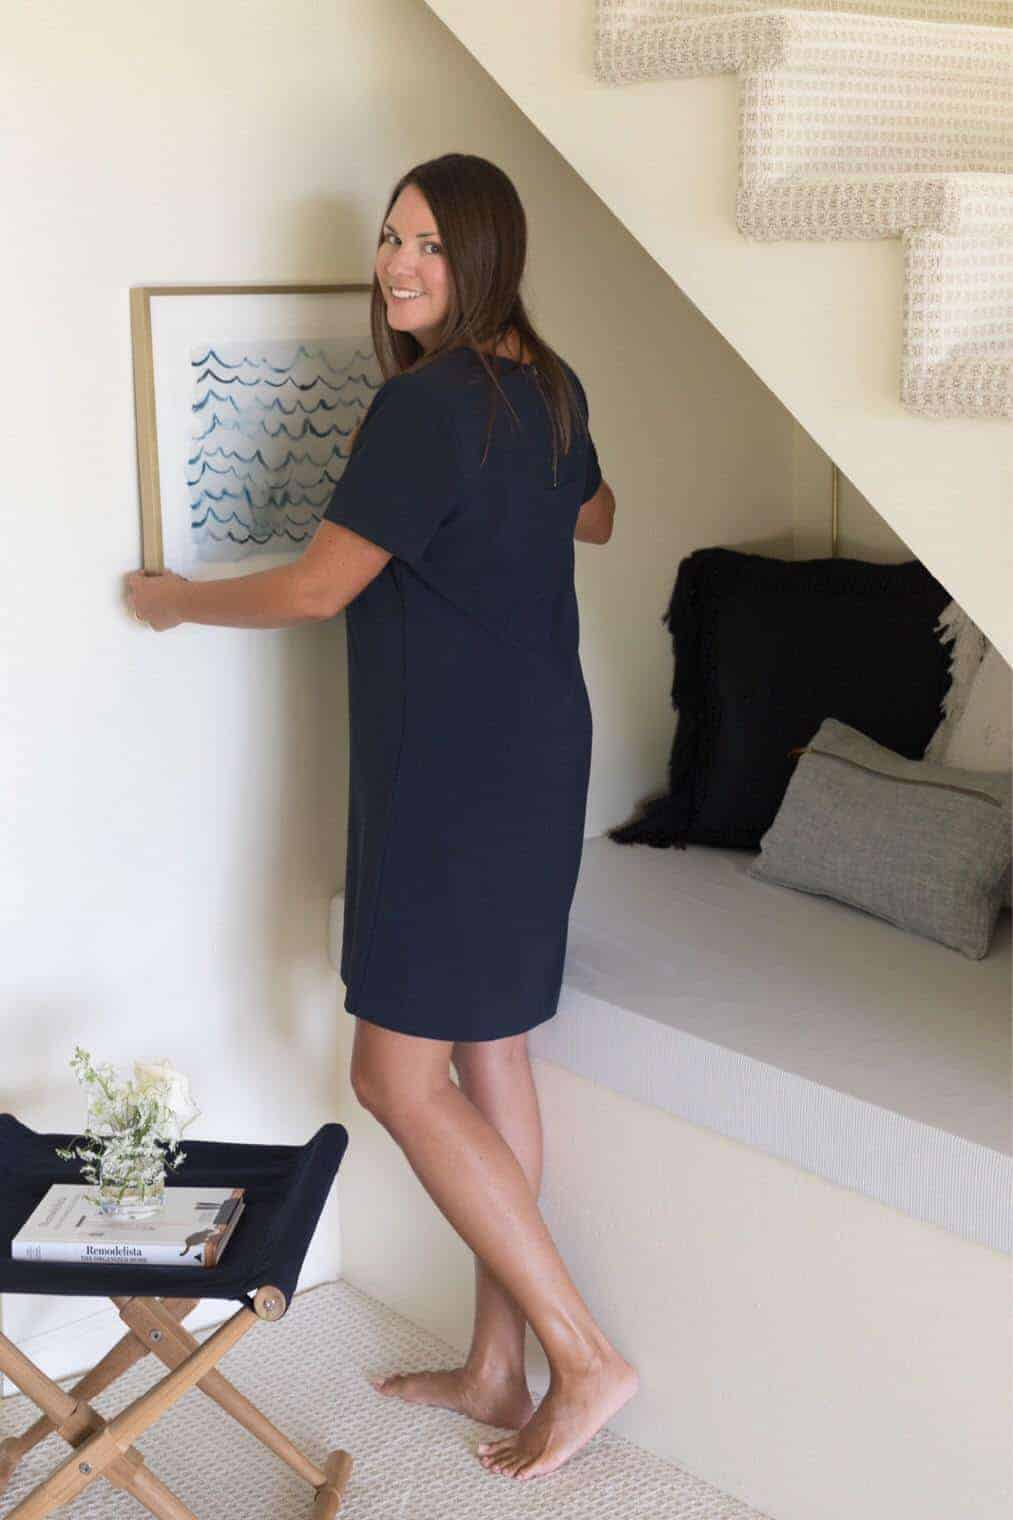 Woman in a blue dress hanging a piece of framed art in a cozy living room.